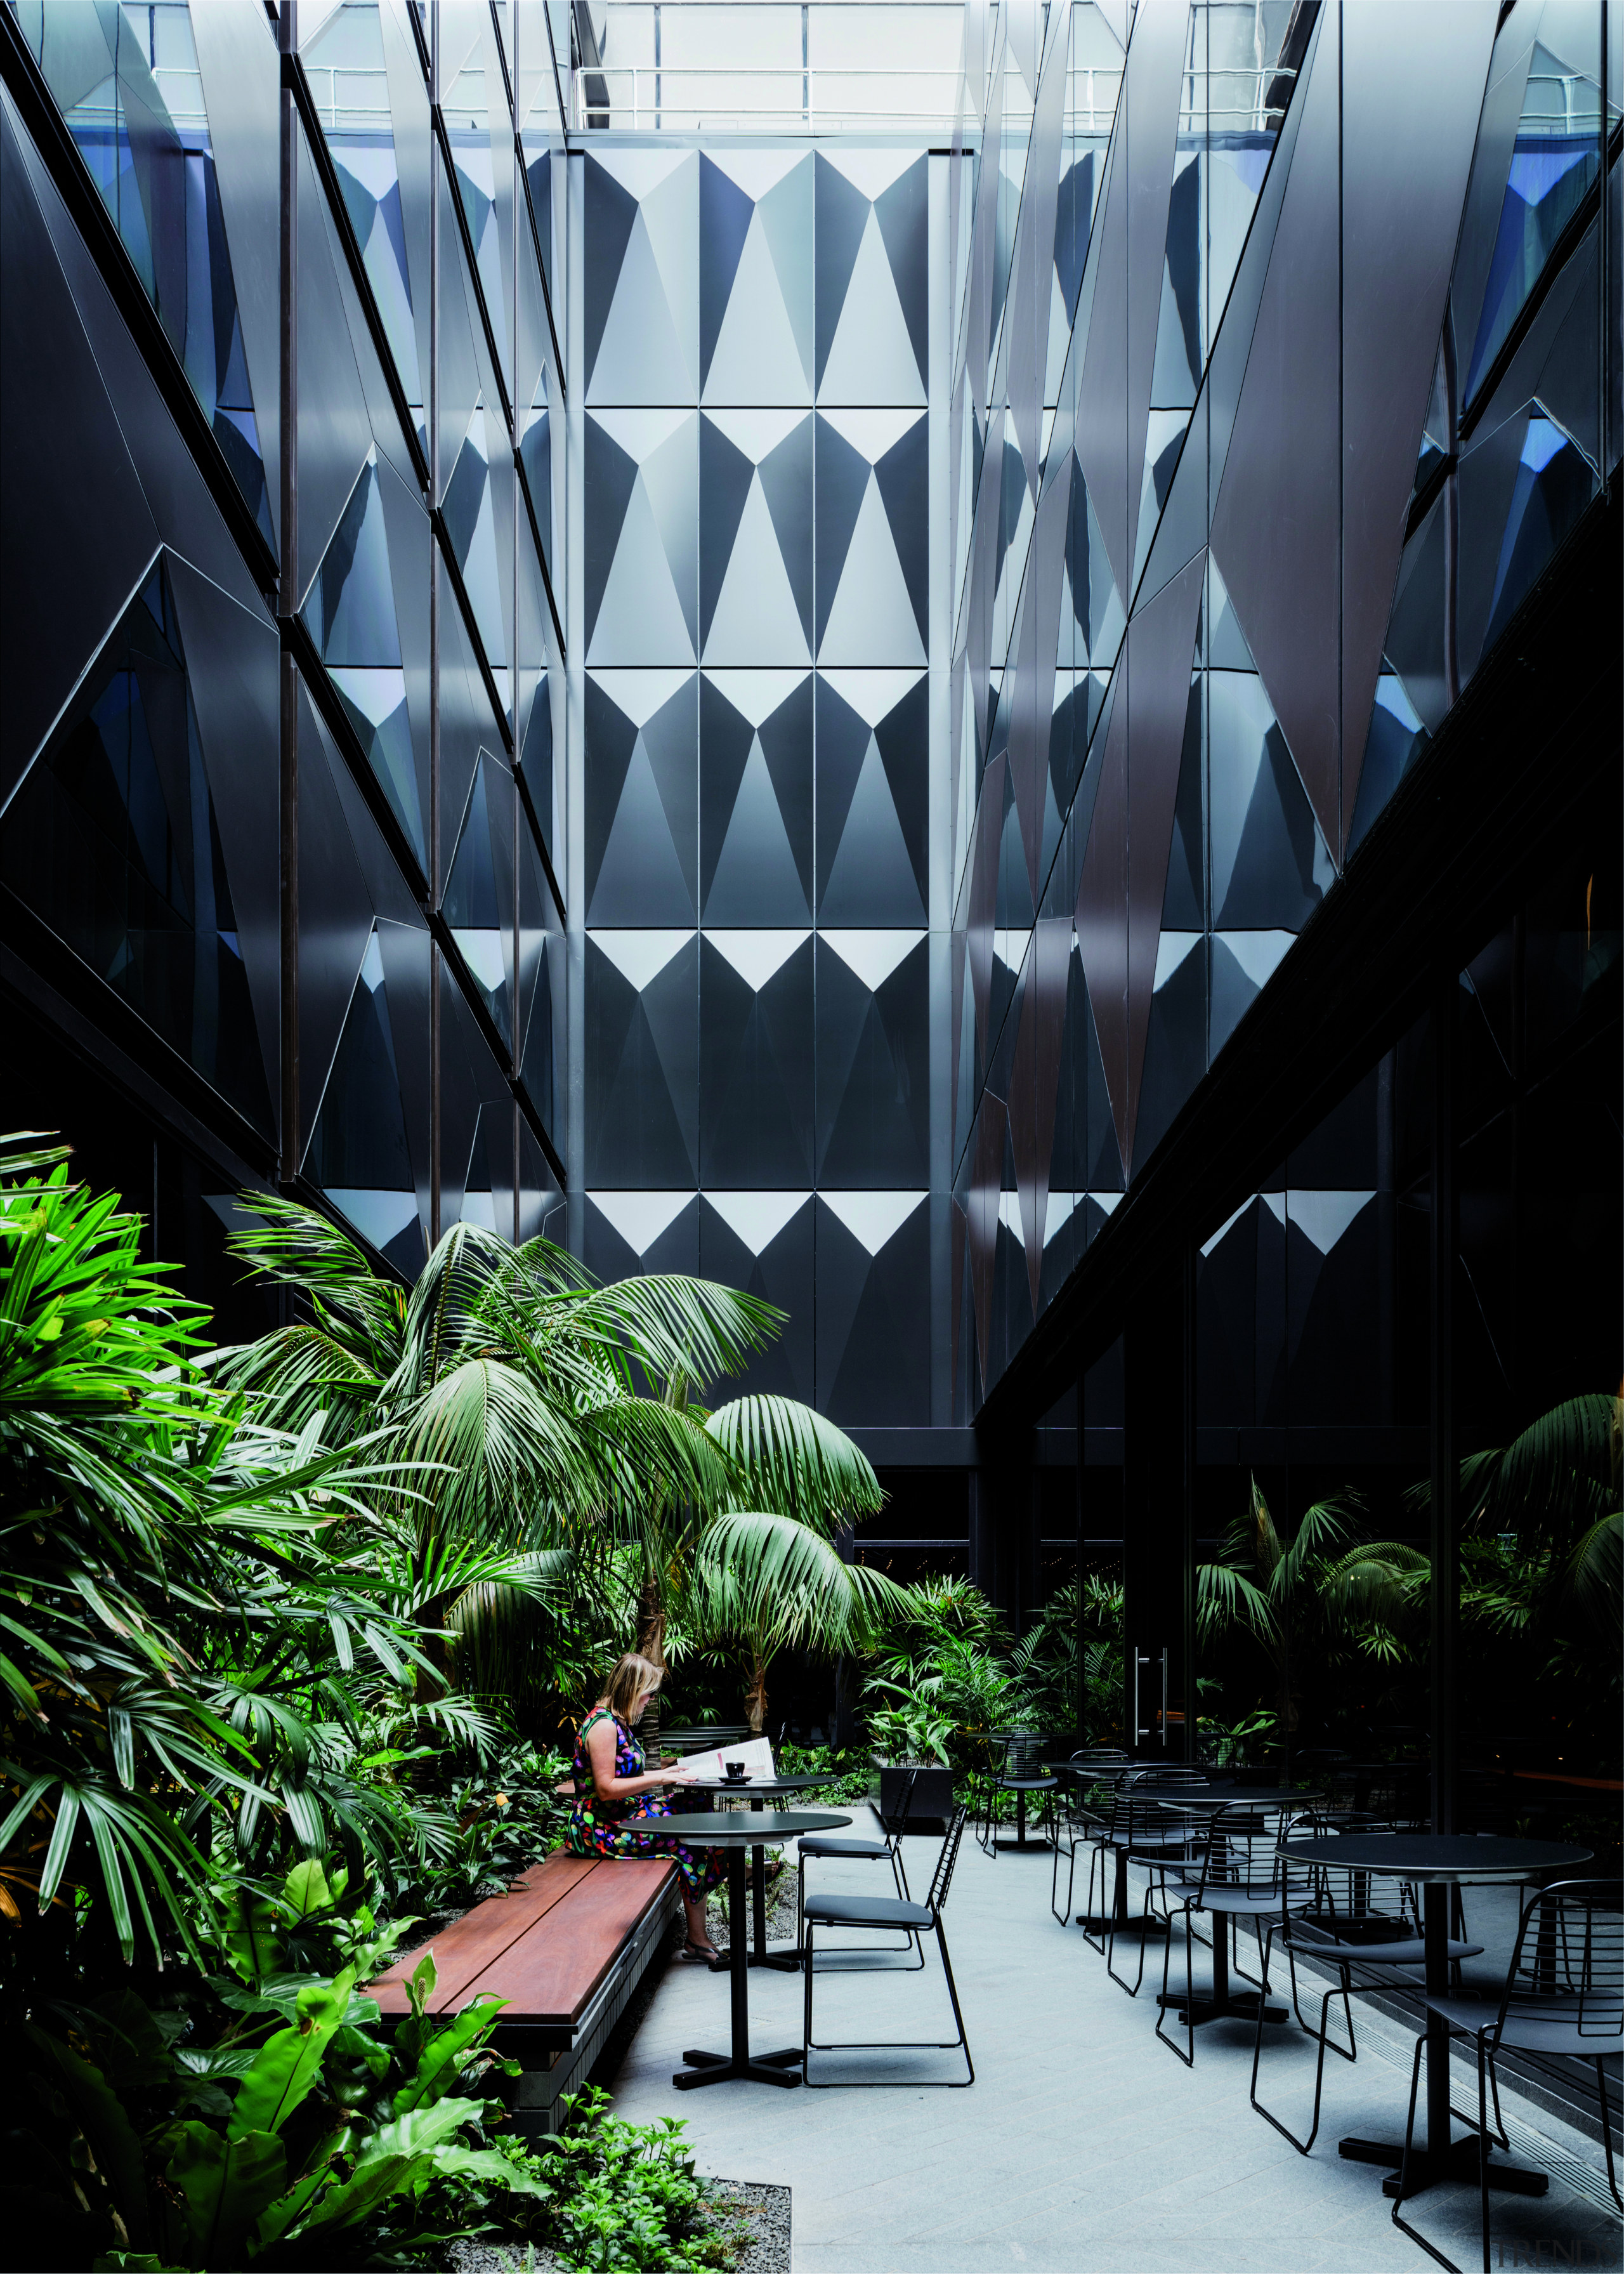 The West Hotel's faceted facade appears on all architecture, building, daylighting, headquarters, metropolitan area, mixed use, plant, tree, black